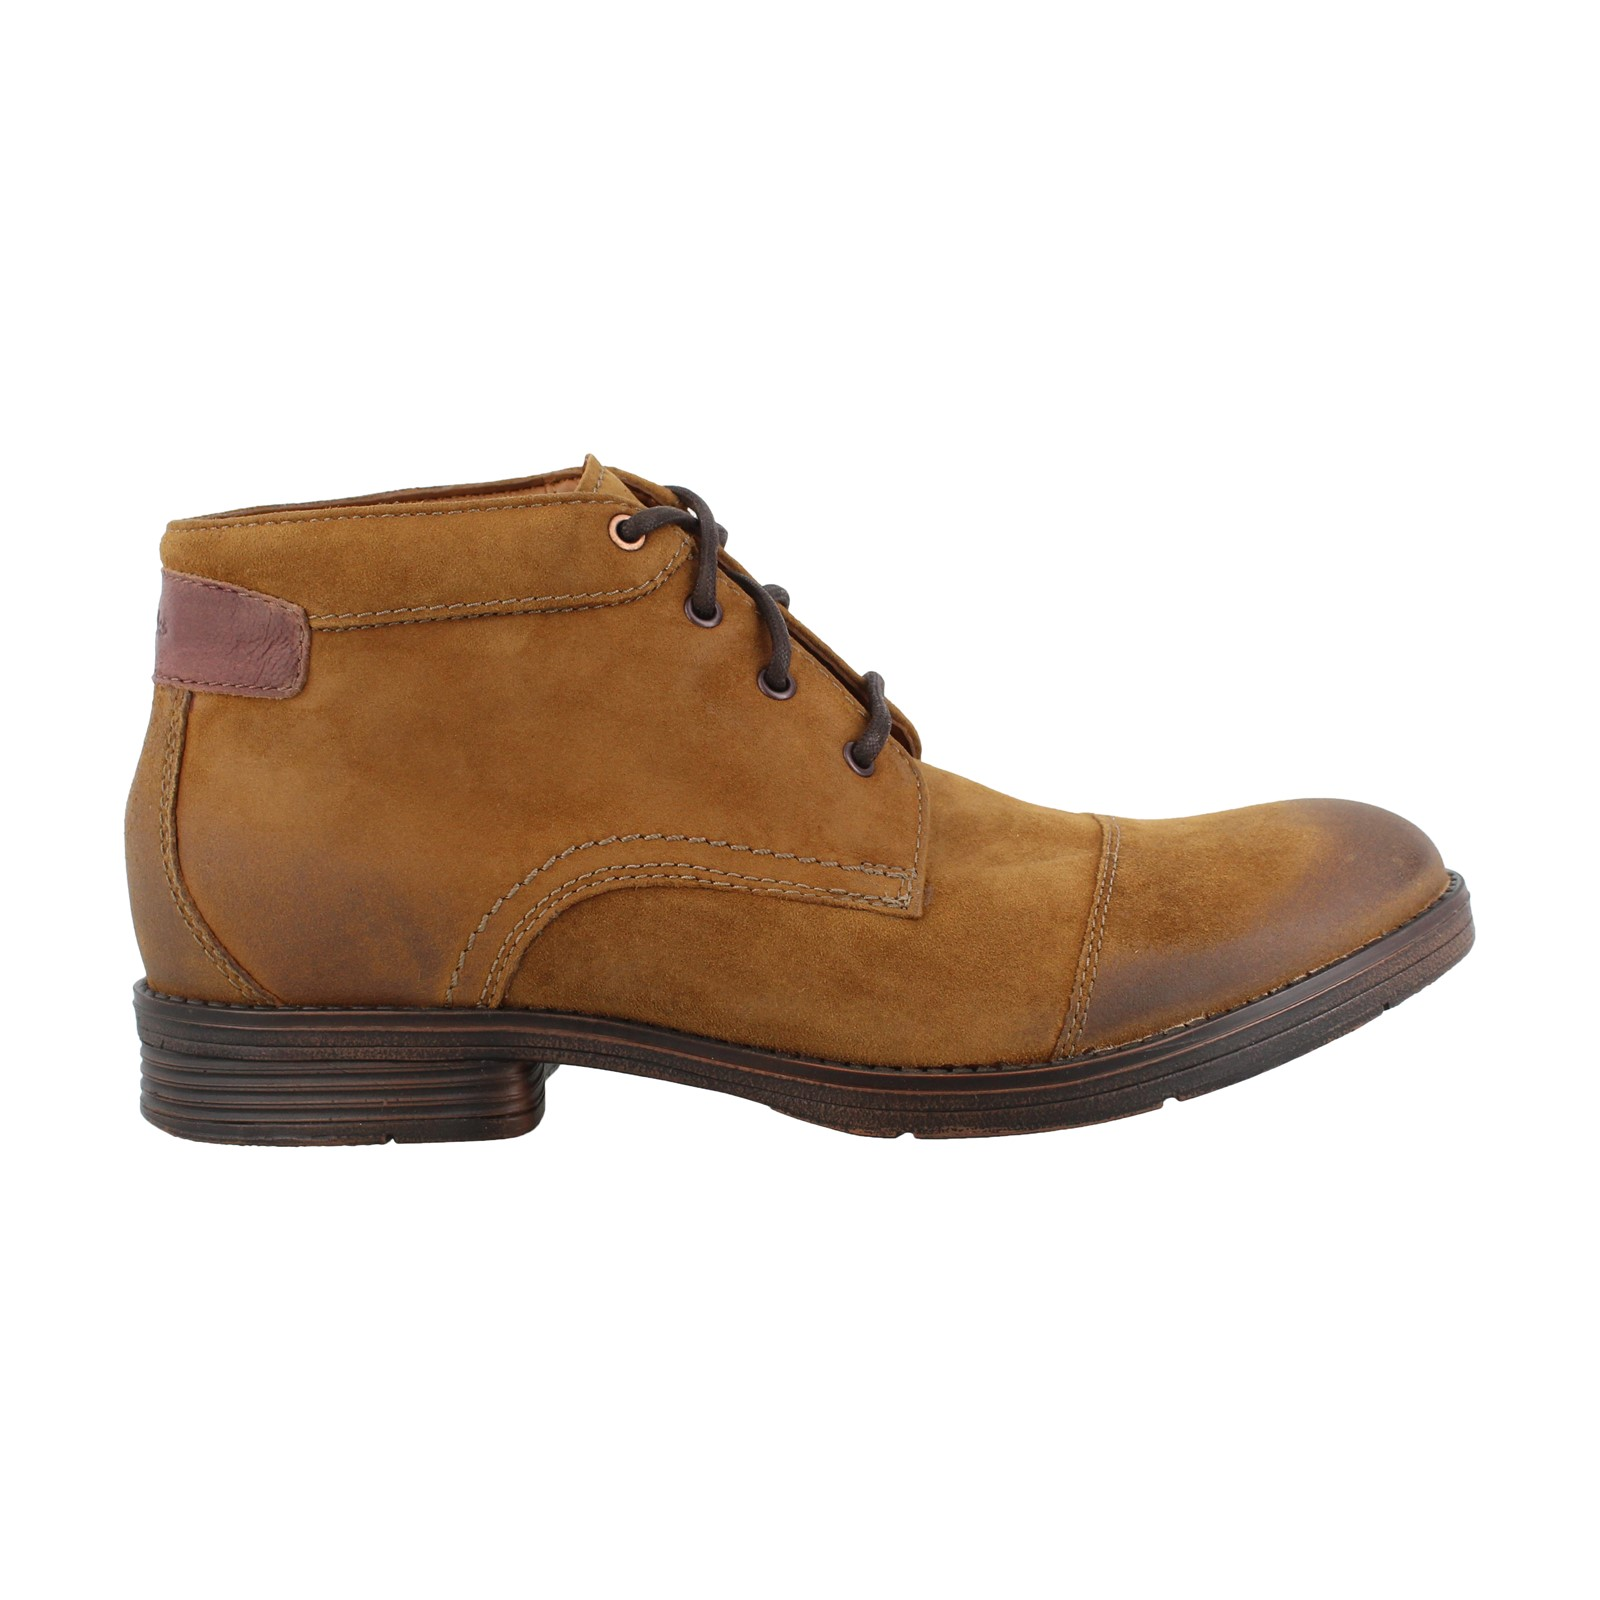 Men's Clarks, Devington Cap Lace up Boots